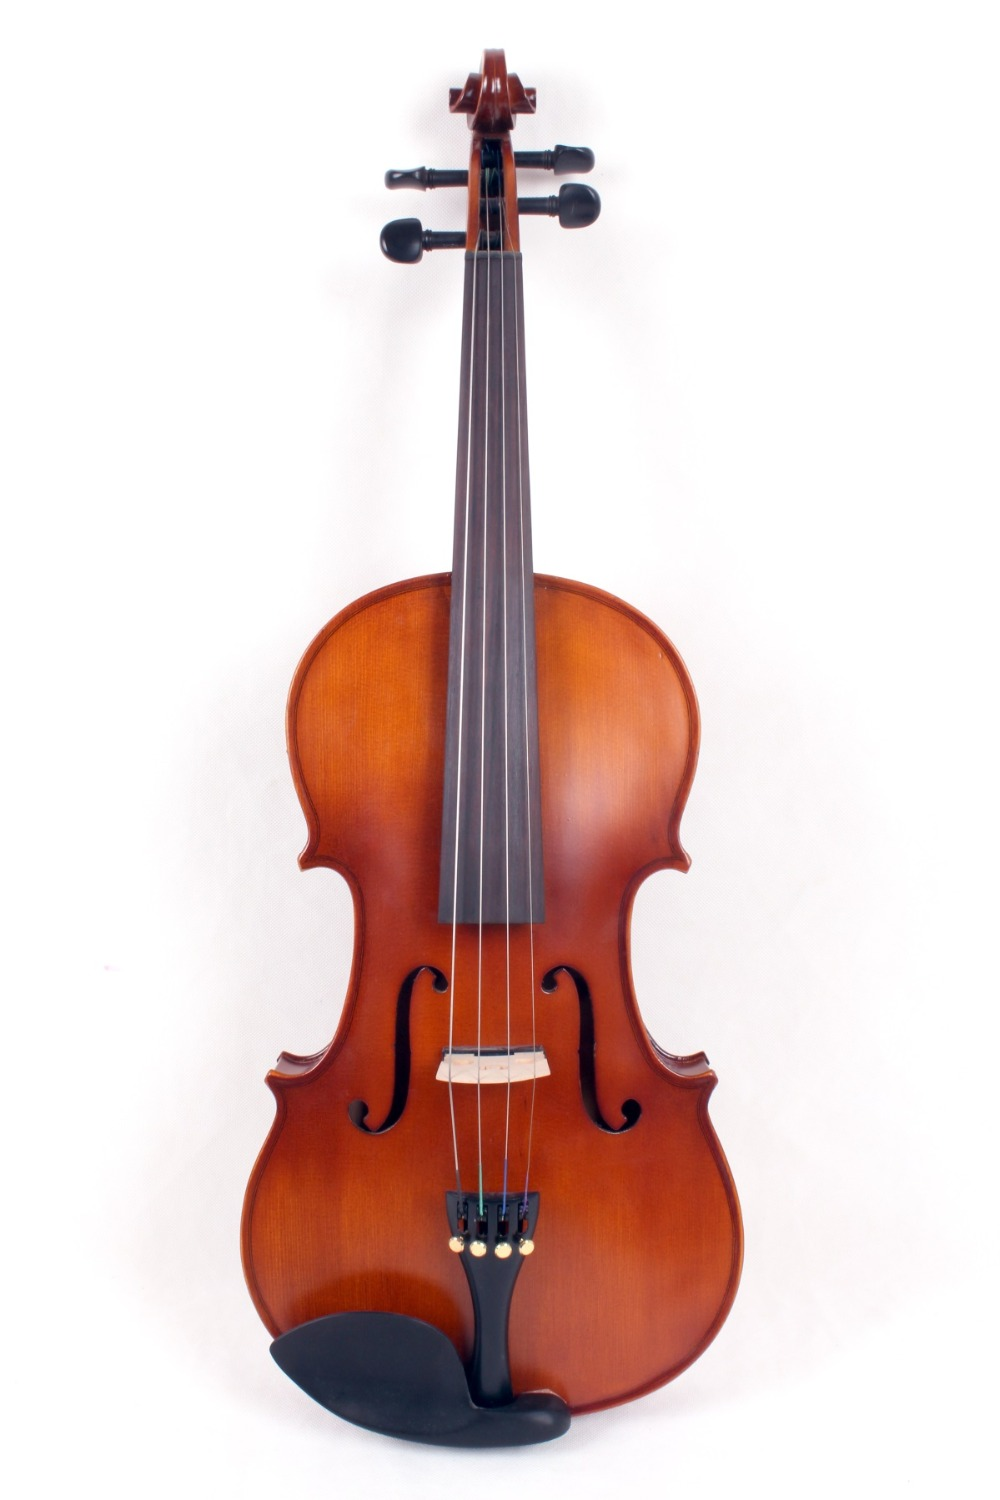 15.5 16 17 inch Electric viola Spruce top and Maple back & neck .Flame Bridge & ebony fingerboard Free viola case bow exaggerate bow tie neck ruffle trim top